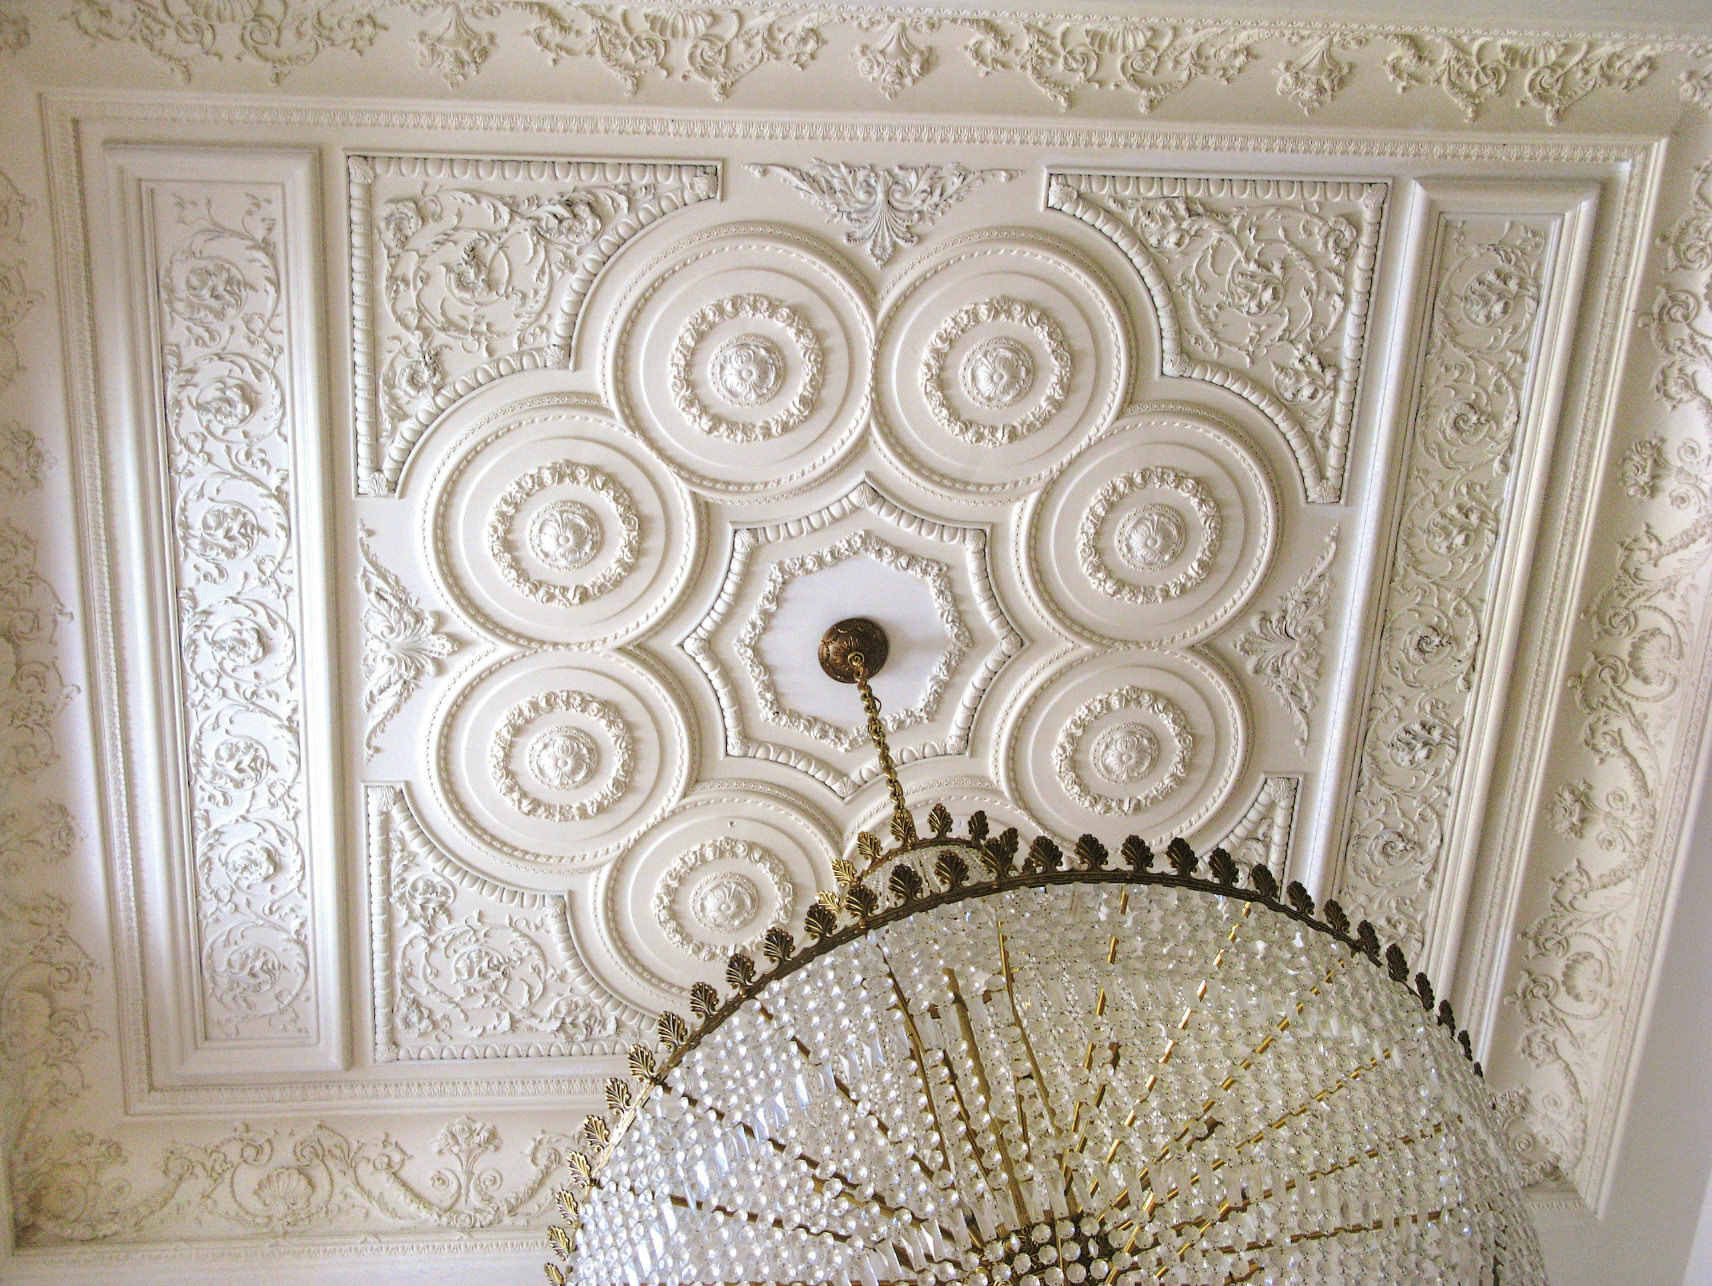 Decorative plaster ceiling